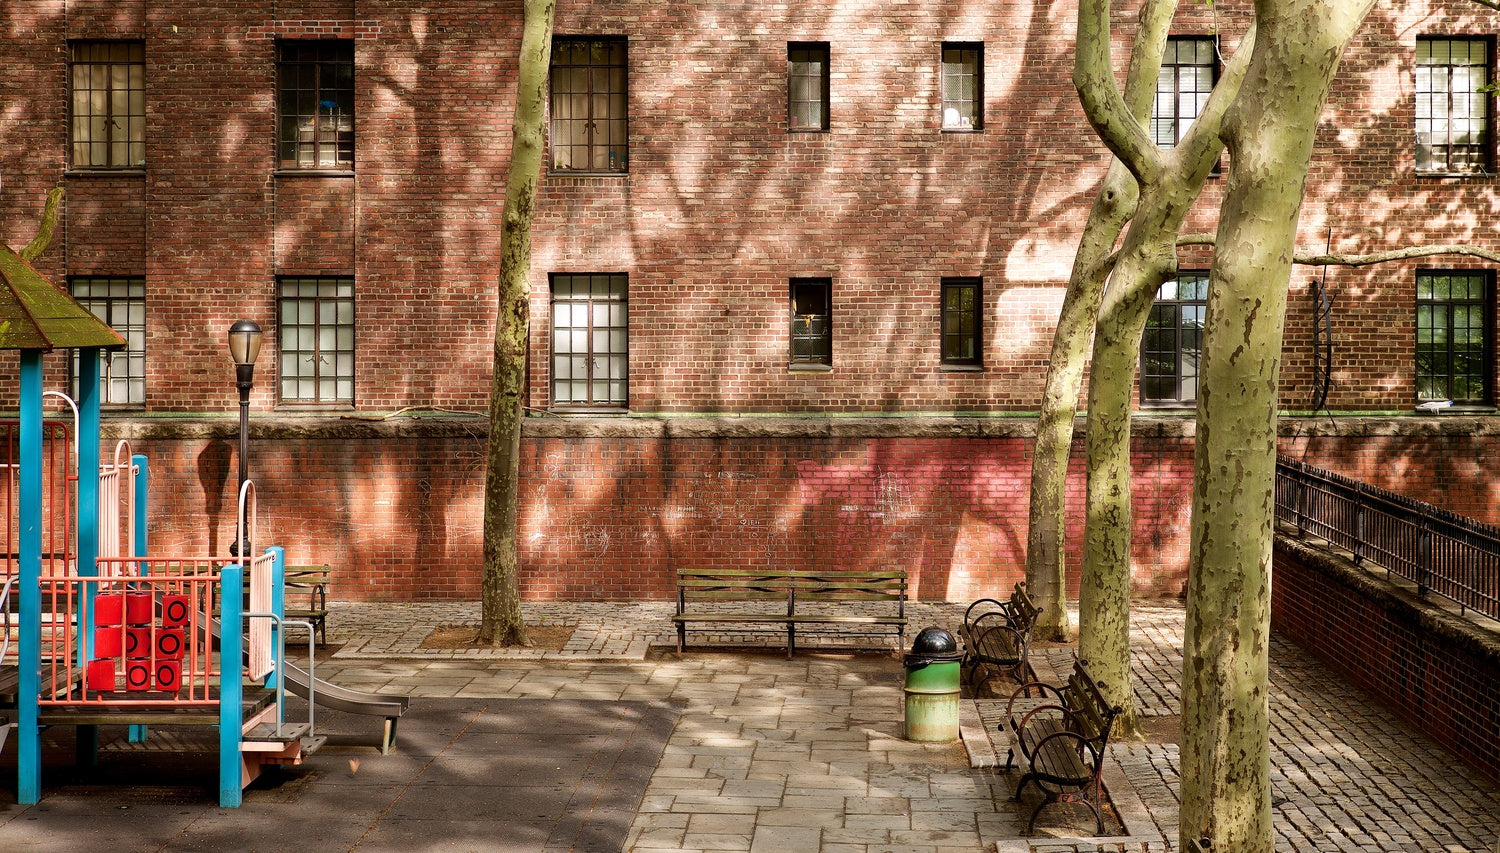 An image of a childrens play park in a city setting with some wooden benches and a brick wall behind a row of trees